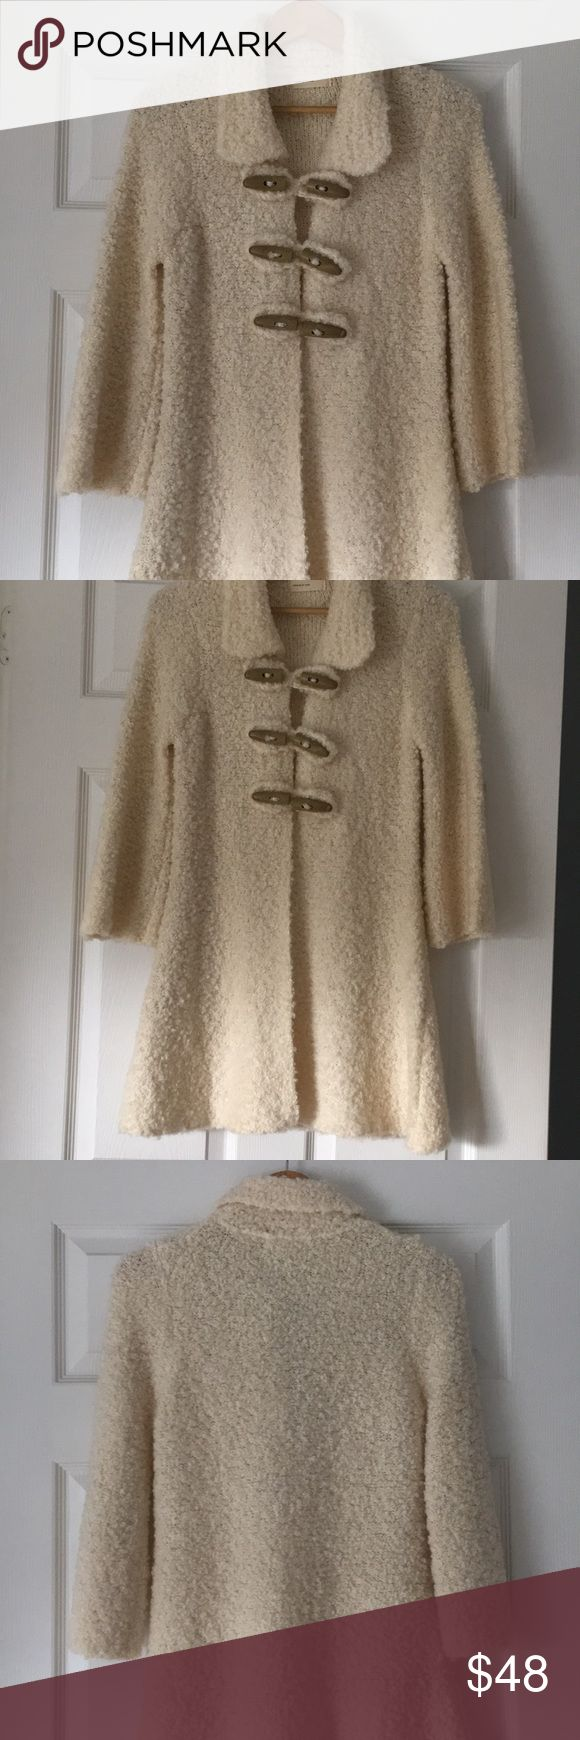 "Anthropologie Brand Sleeping on Snow Sweatercoat Anthropologie Brand Sleeping on Snow Sweater Coat. Perfect condition worn once. Very soft (not scratchy) looks pretty over dresses & skirts or jeans / T-shirt. Ivory. Pit to pit 16"", Sleeve 19"" with slight bell shape, length 32"". Bundle discounts available. Anthropologie Sweaters"